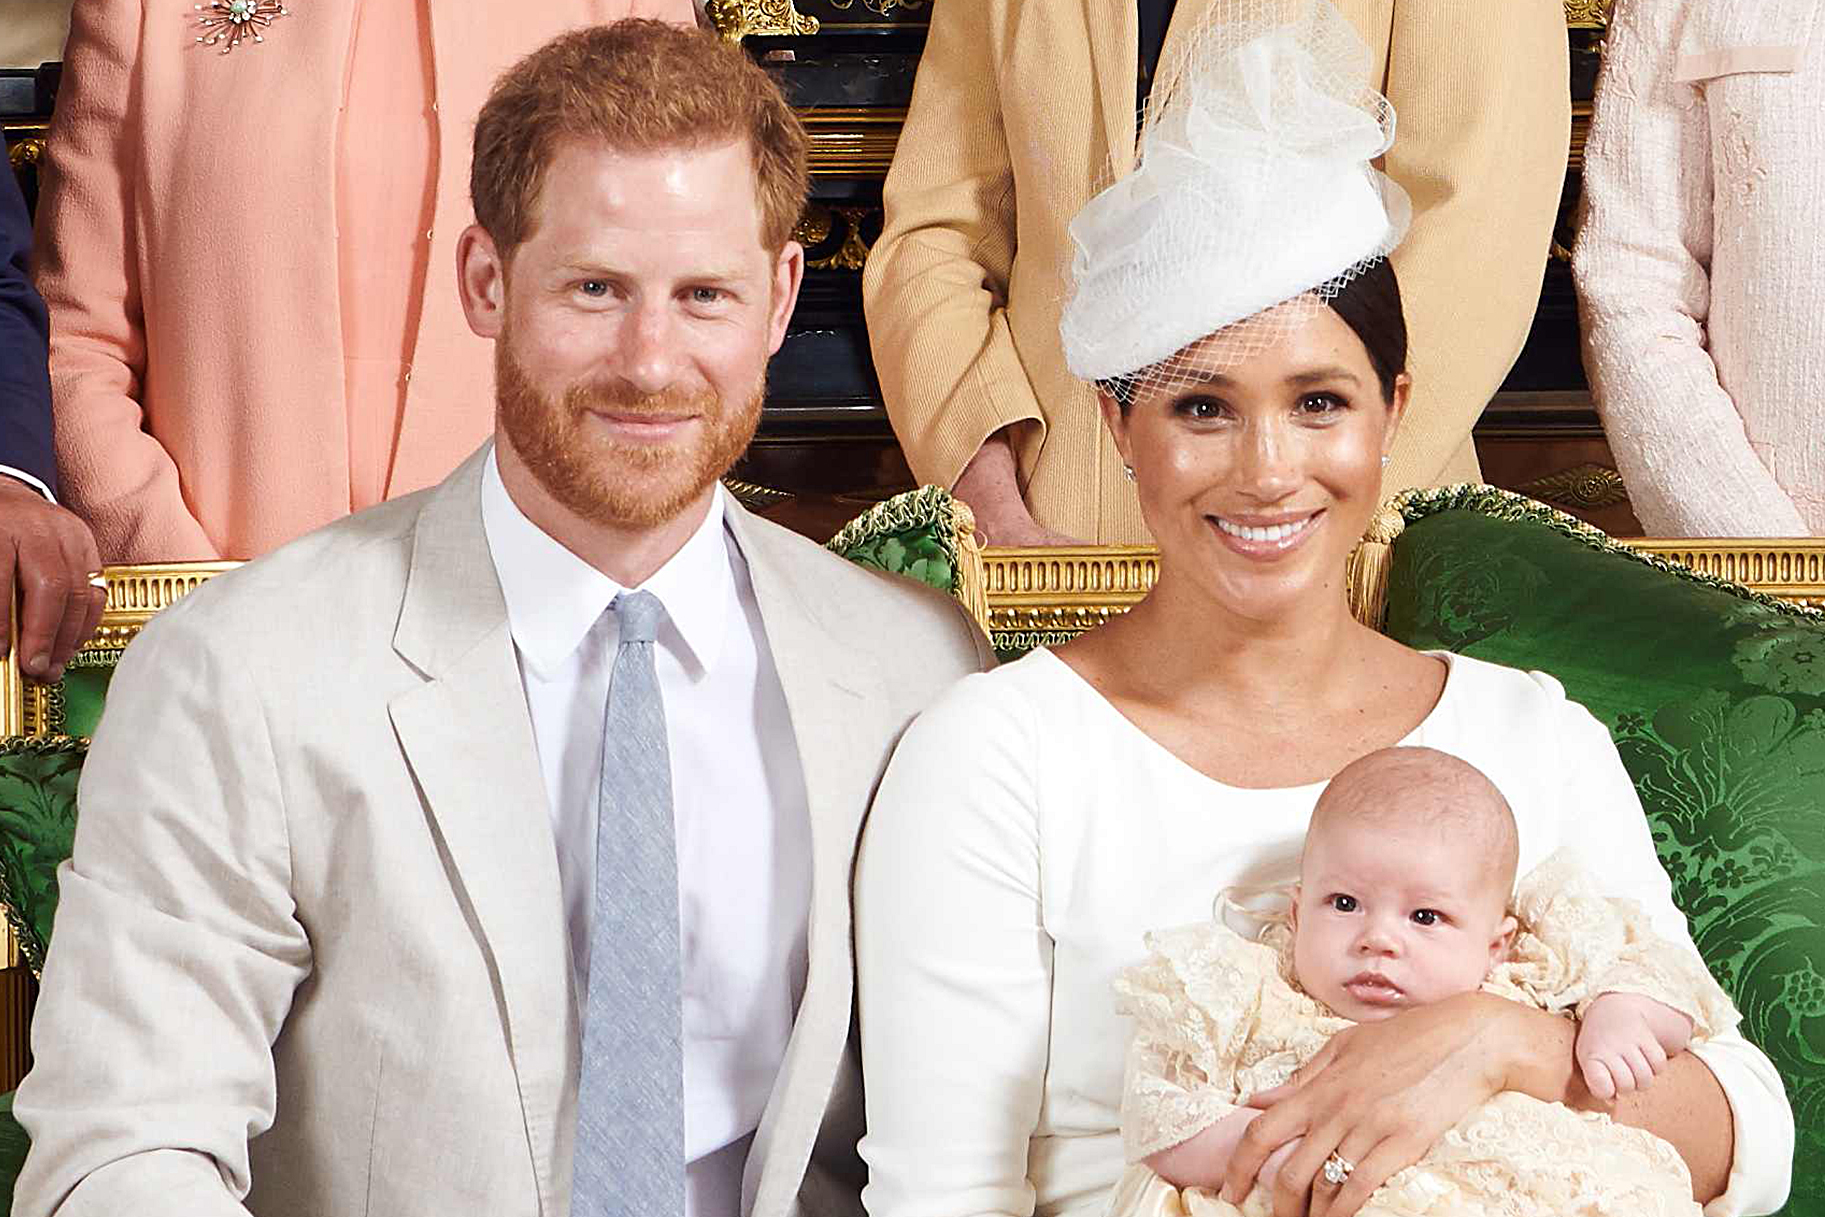 Archie Harrison Mountbatten-Windsor christening